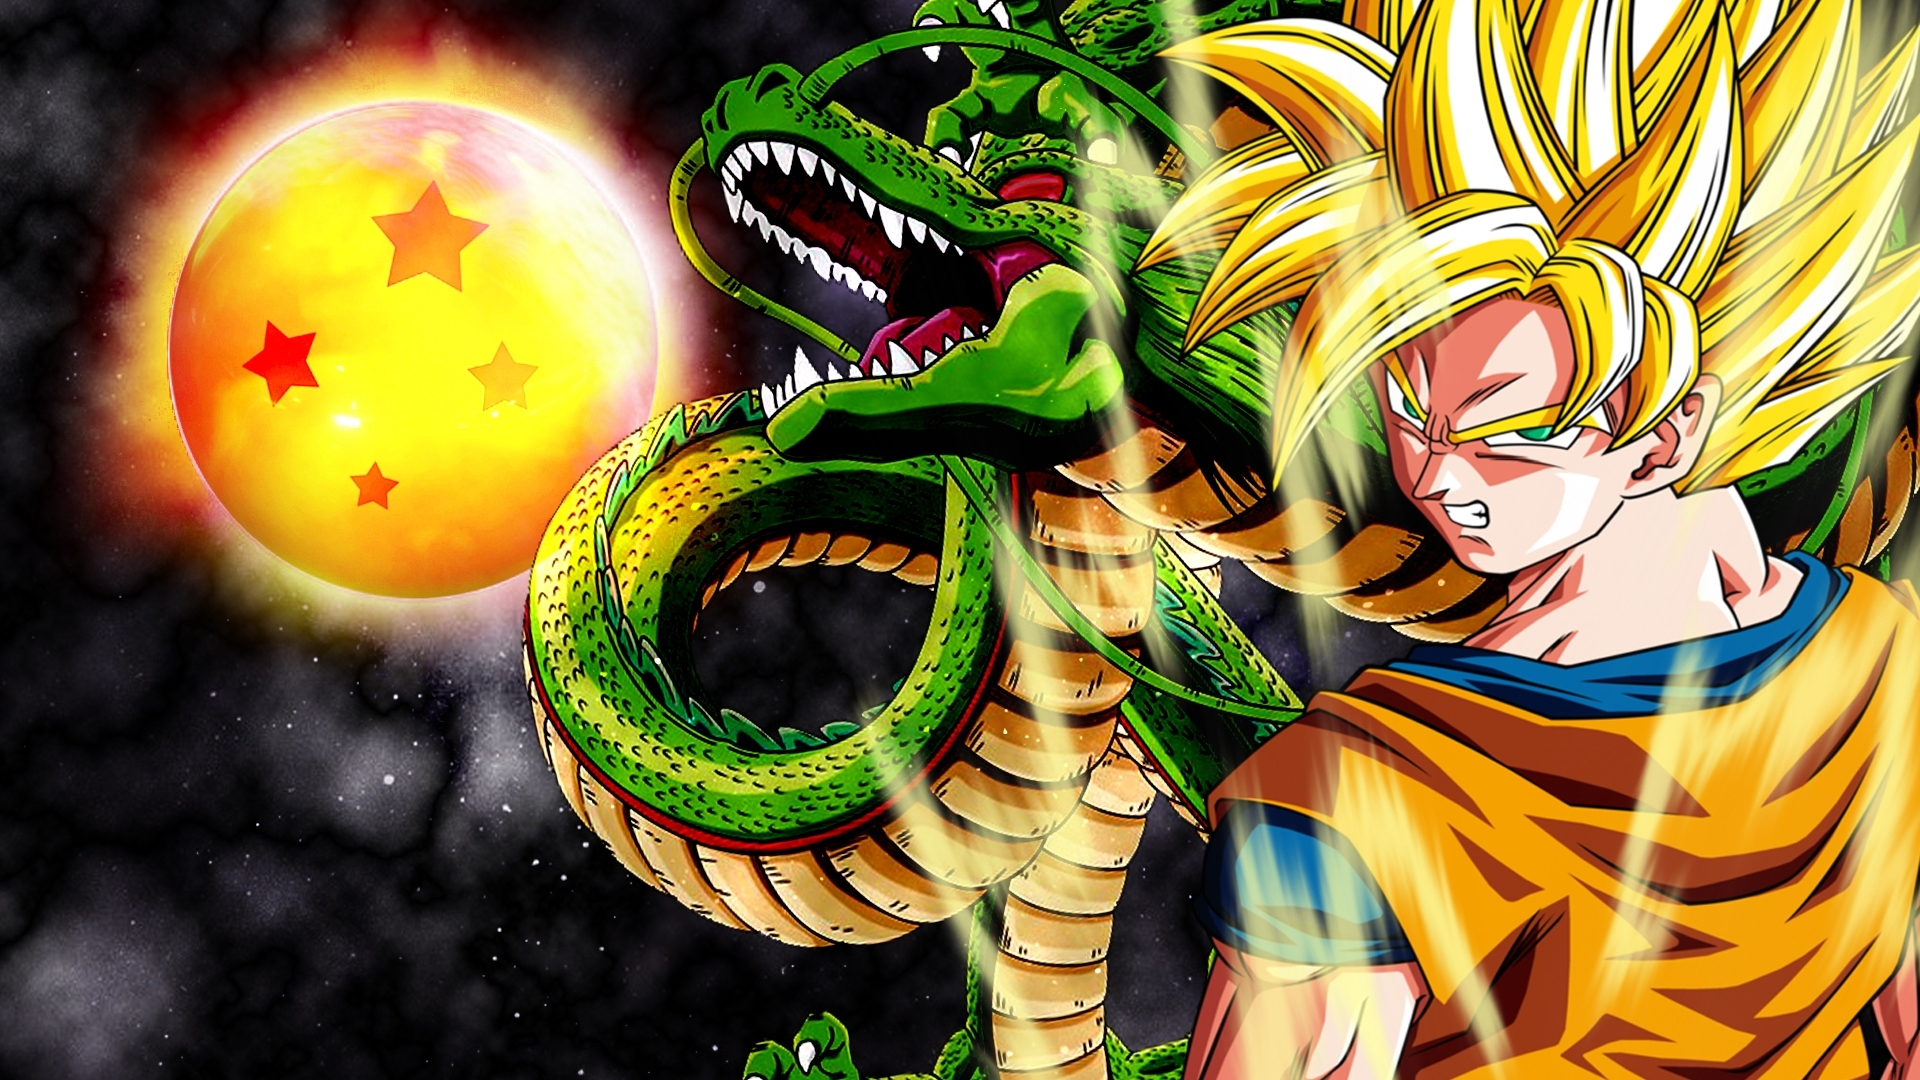 dragon ball z 10242 1920x1080 px ~ hdwallsource